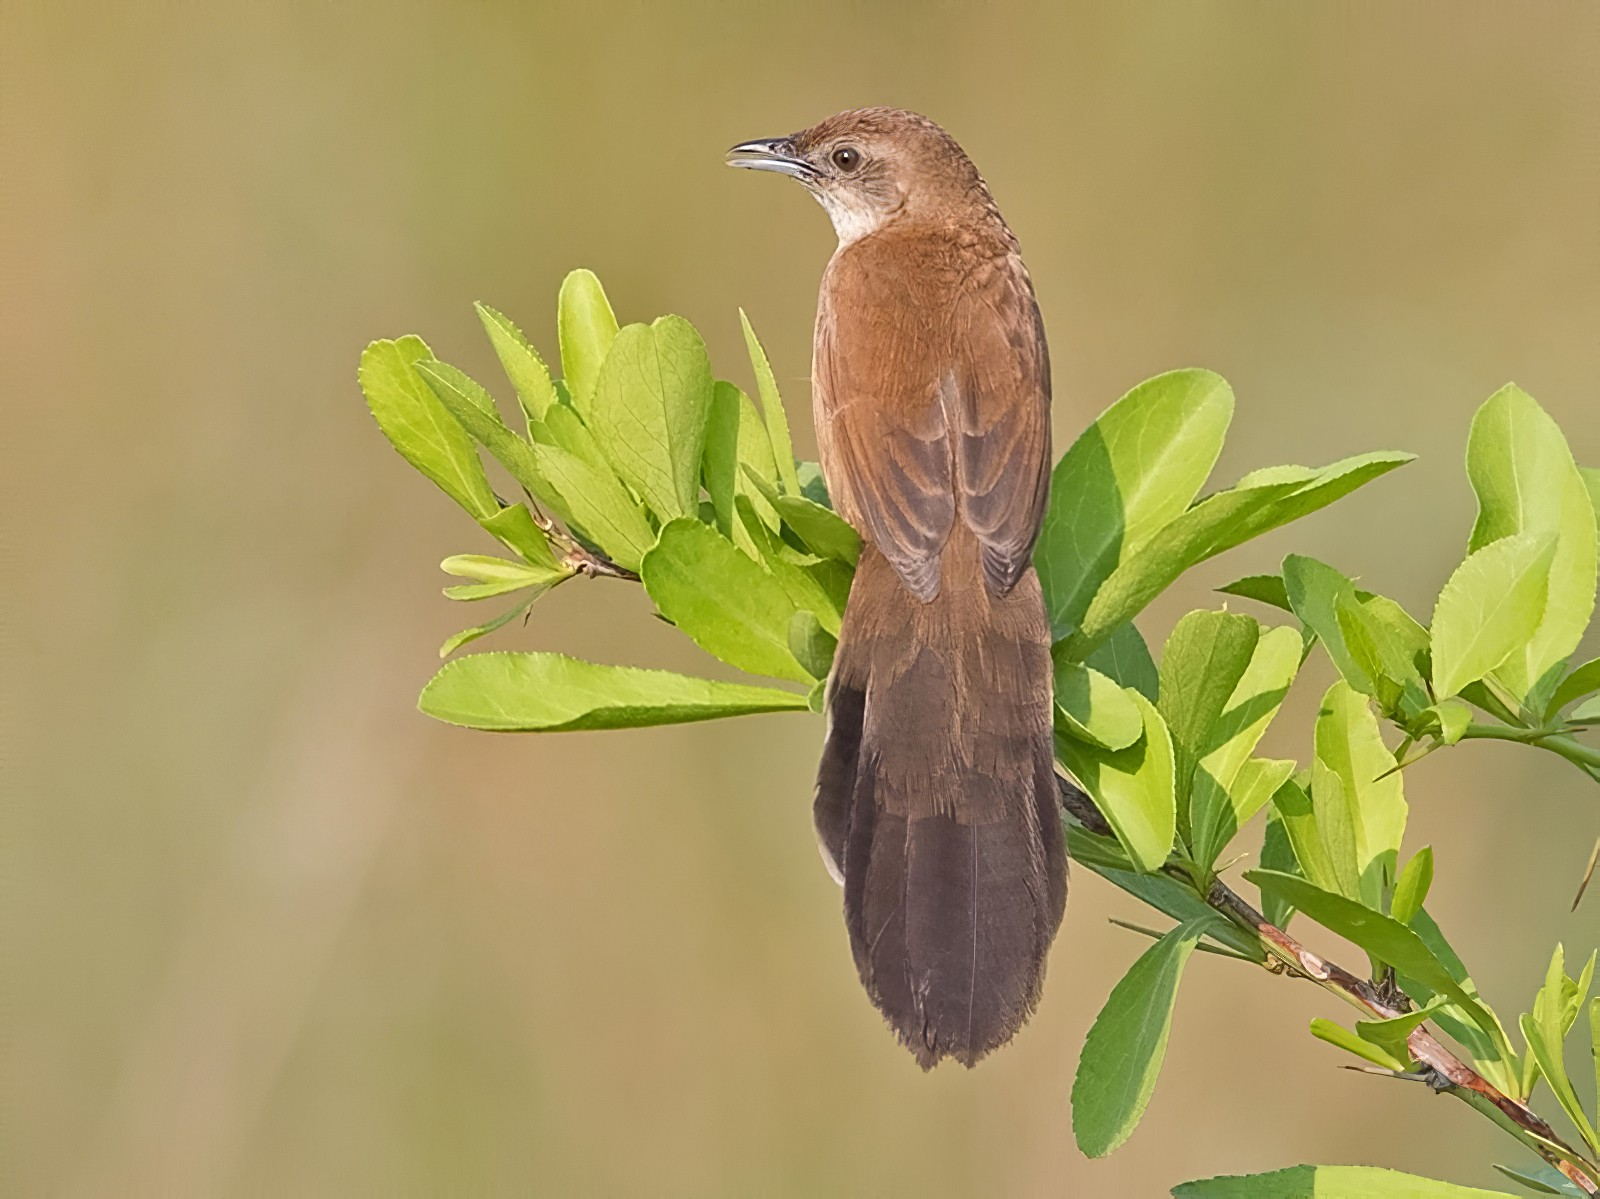 Fan-tailed Grassbird - Niall D Perrins